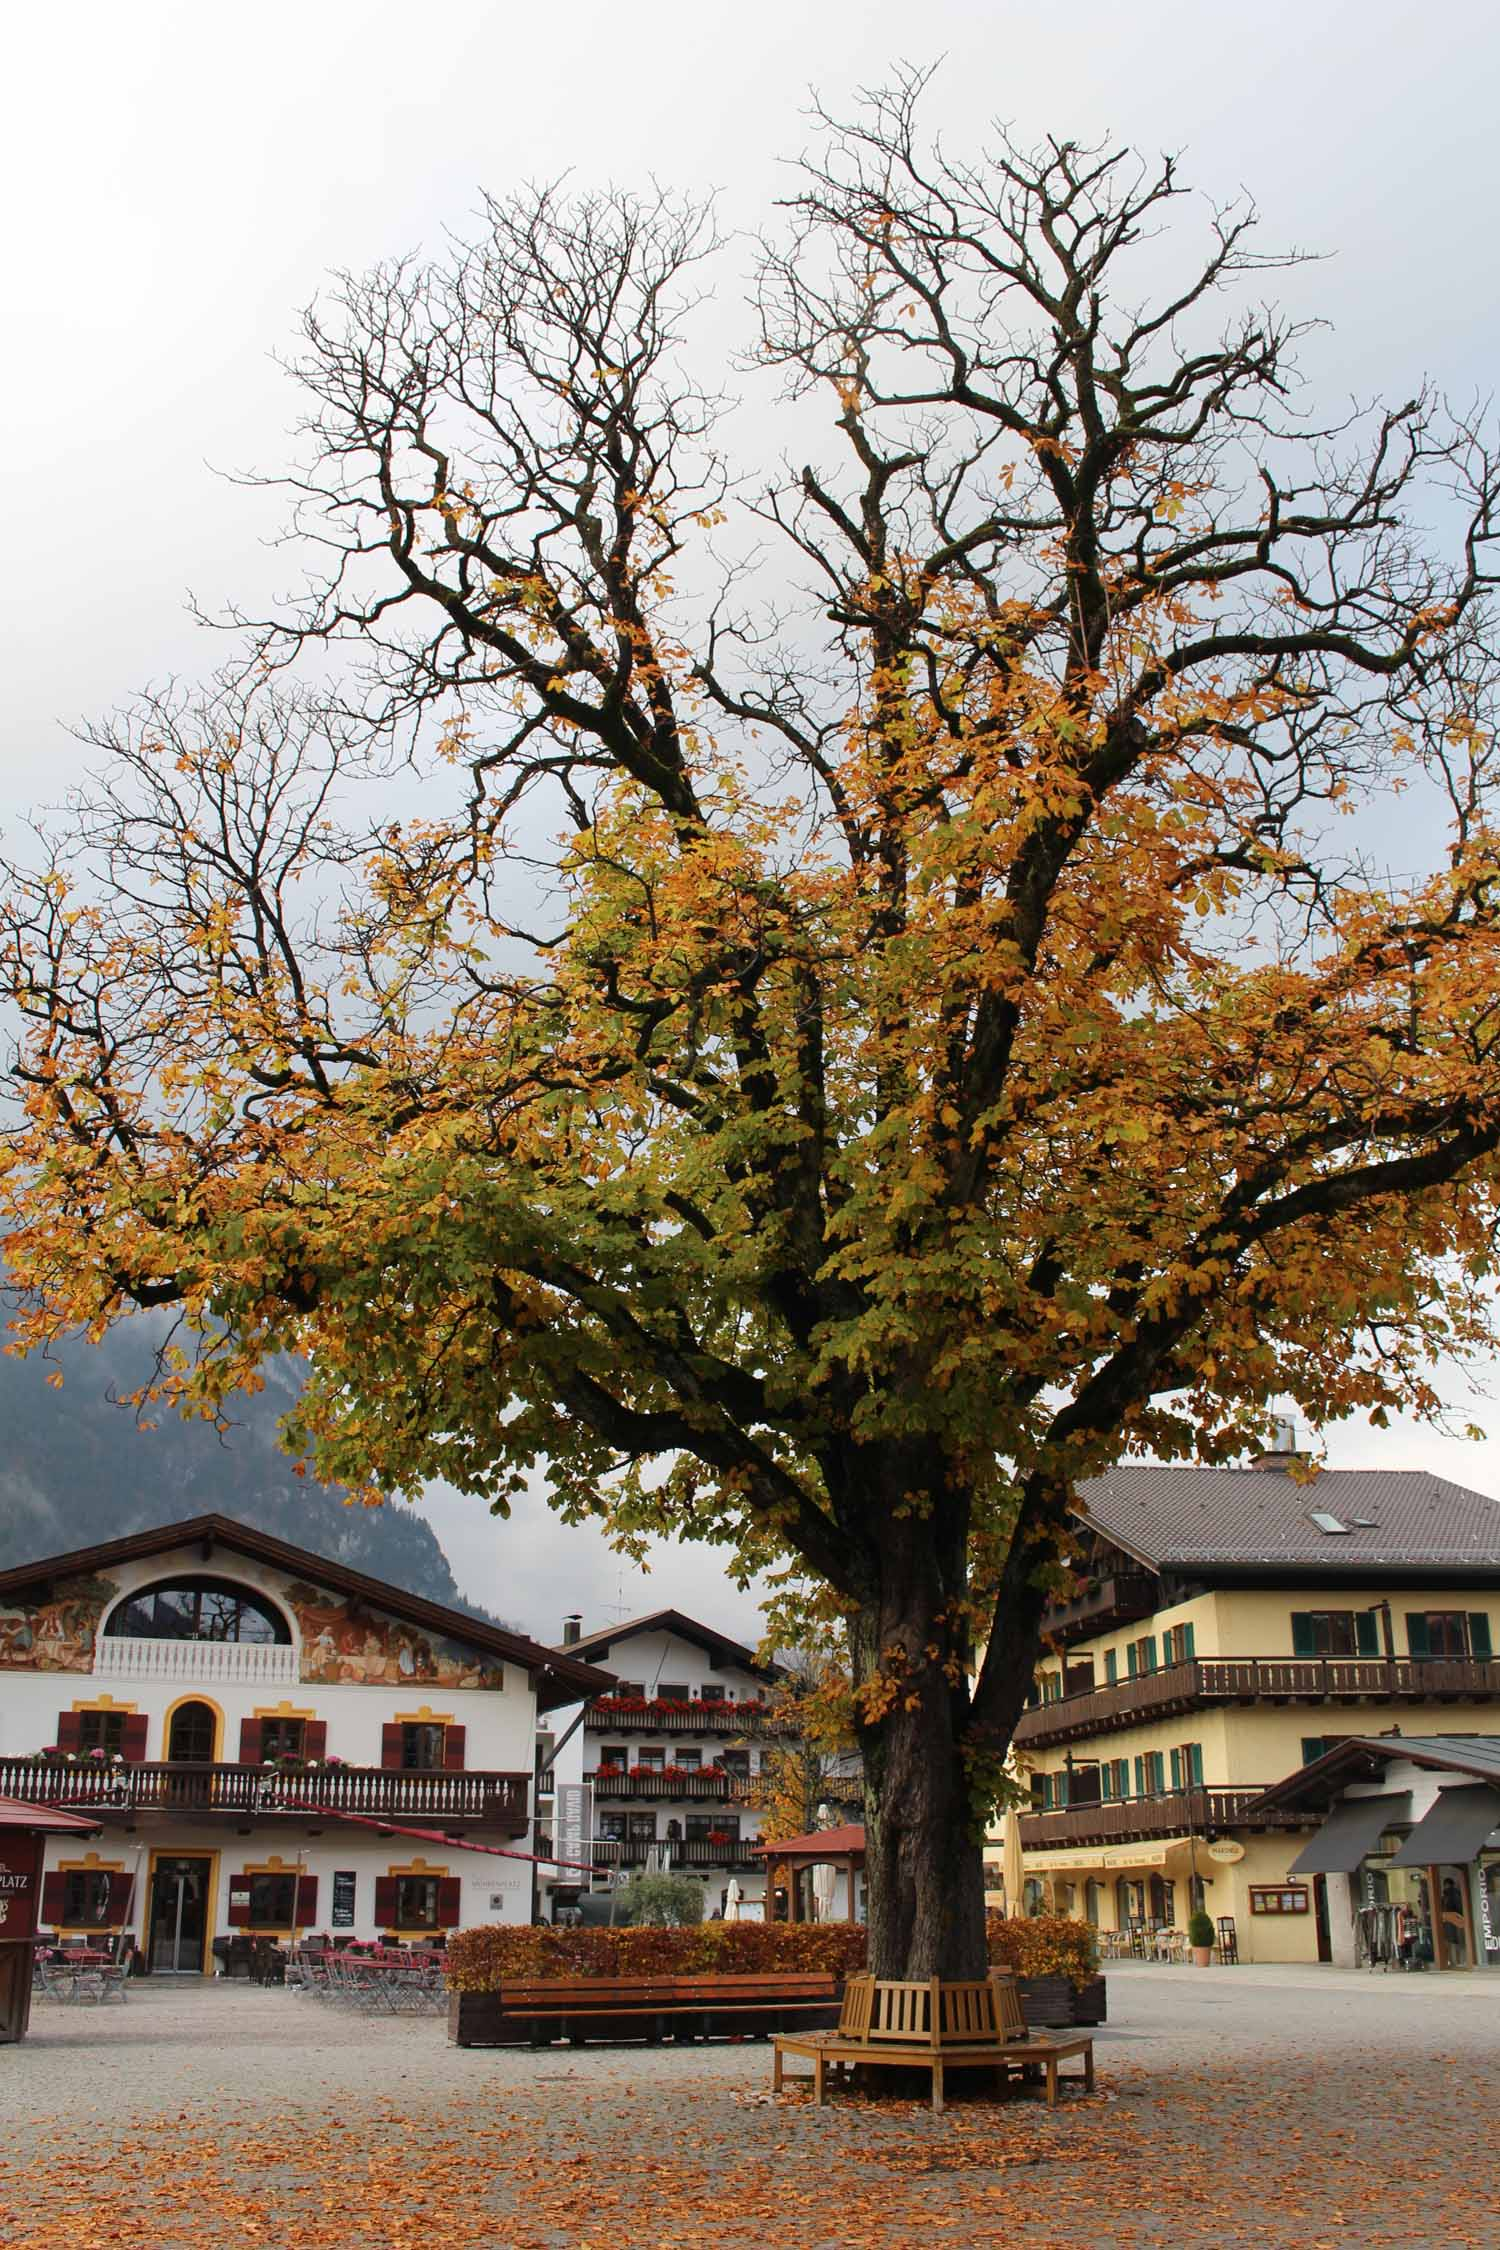 The beautiful city of Garmisch-Partenkirchen in Bavaria